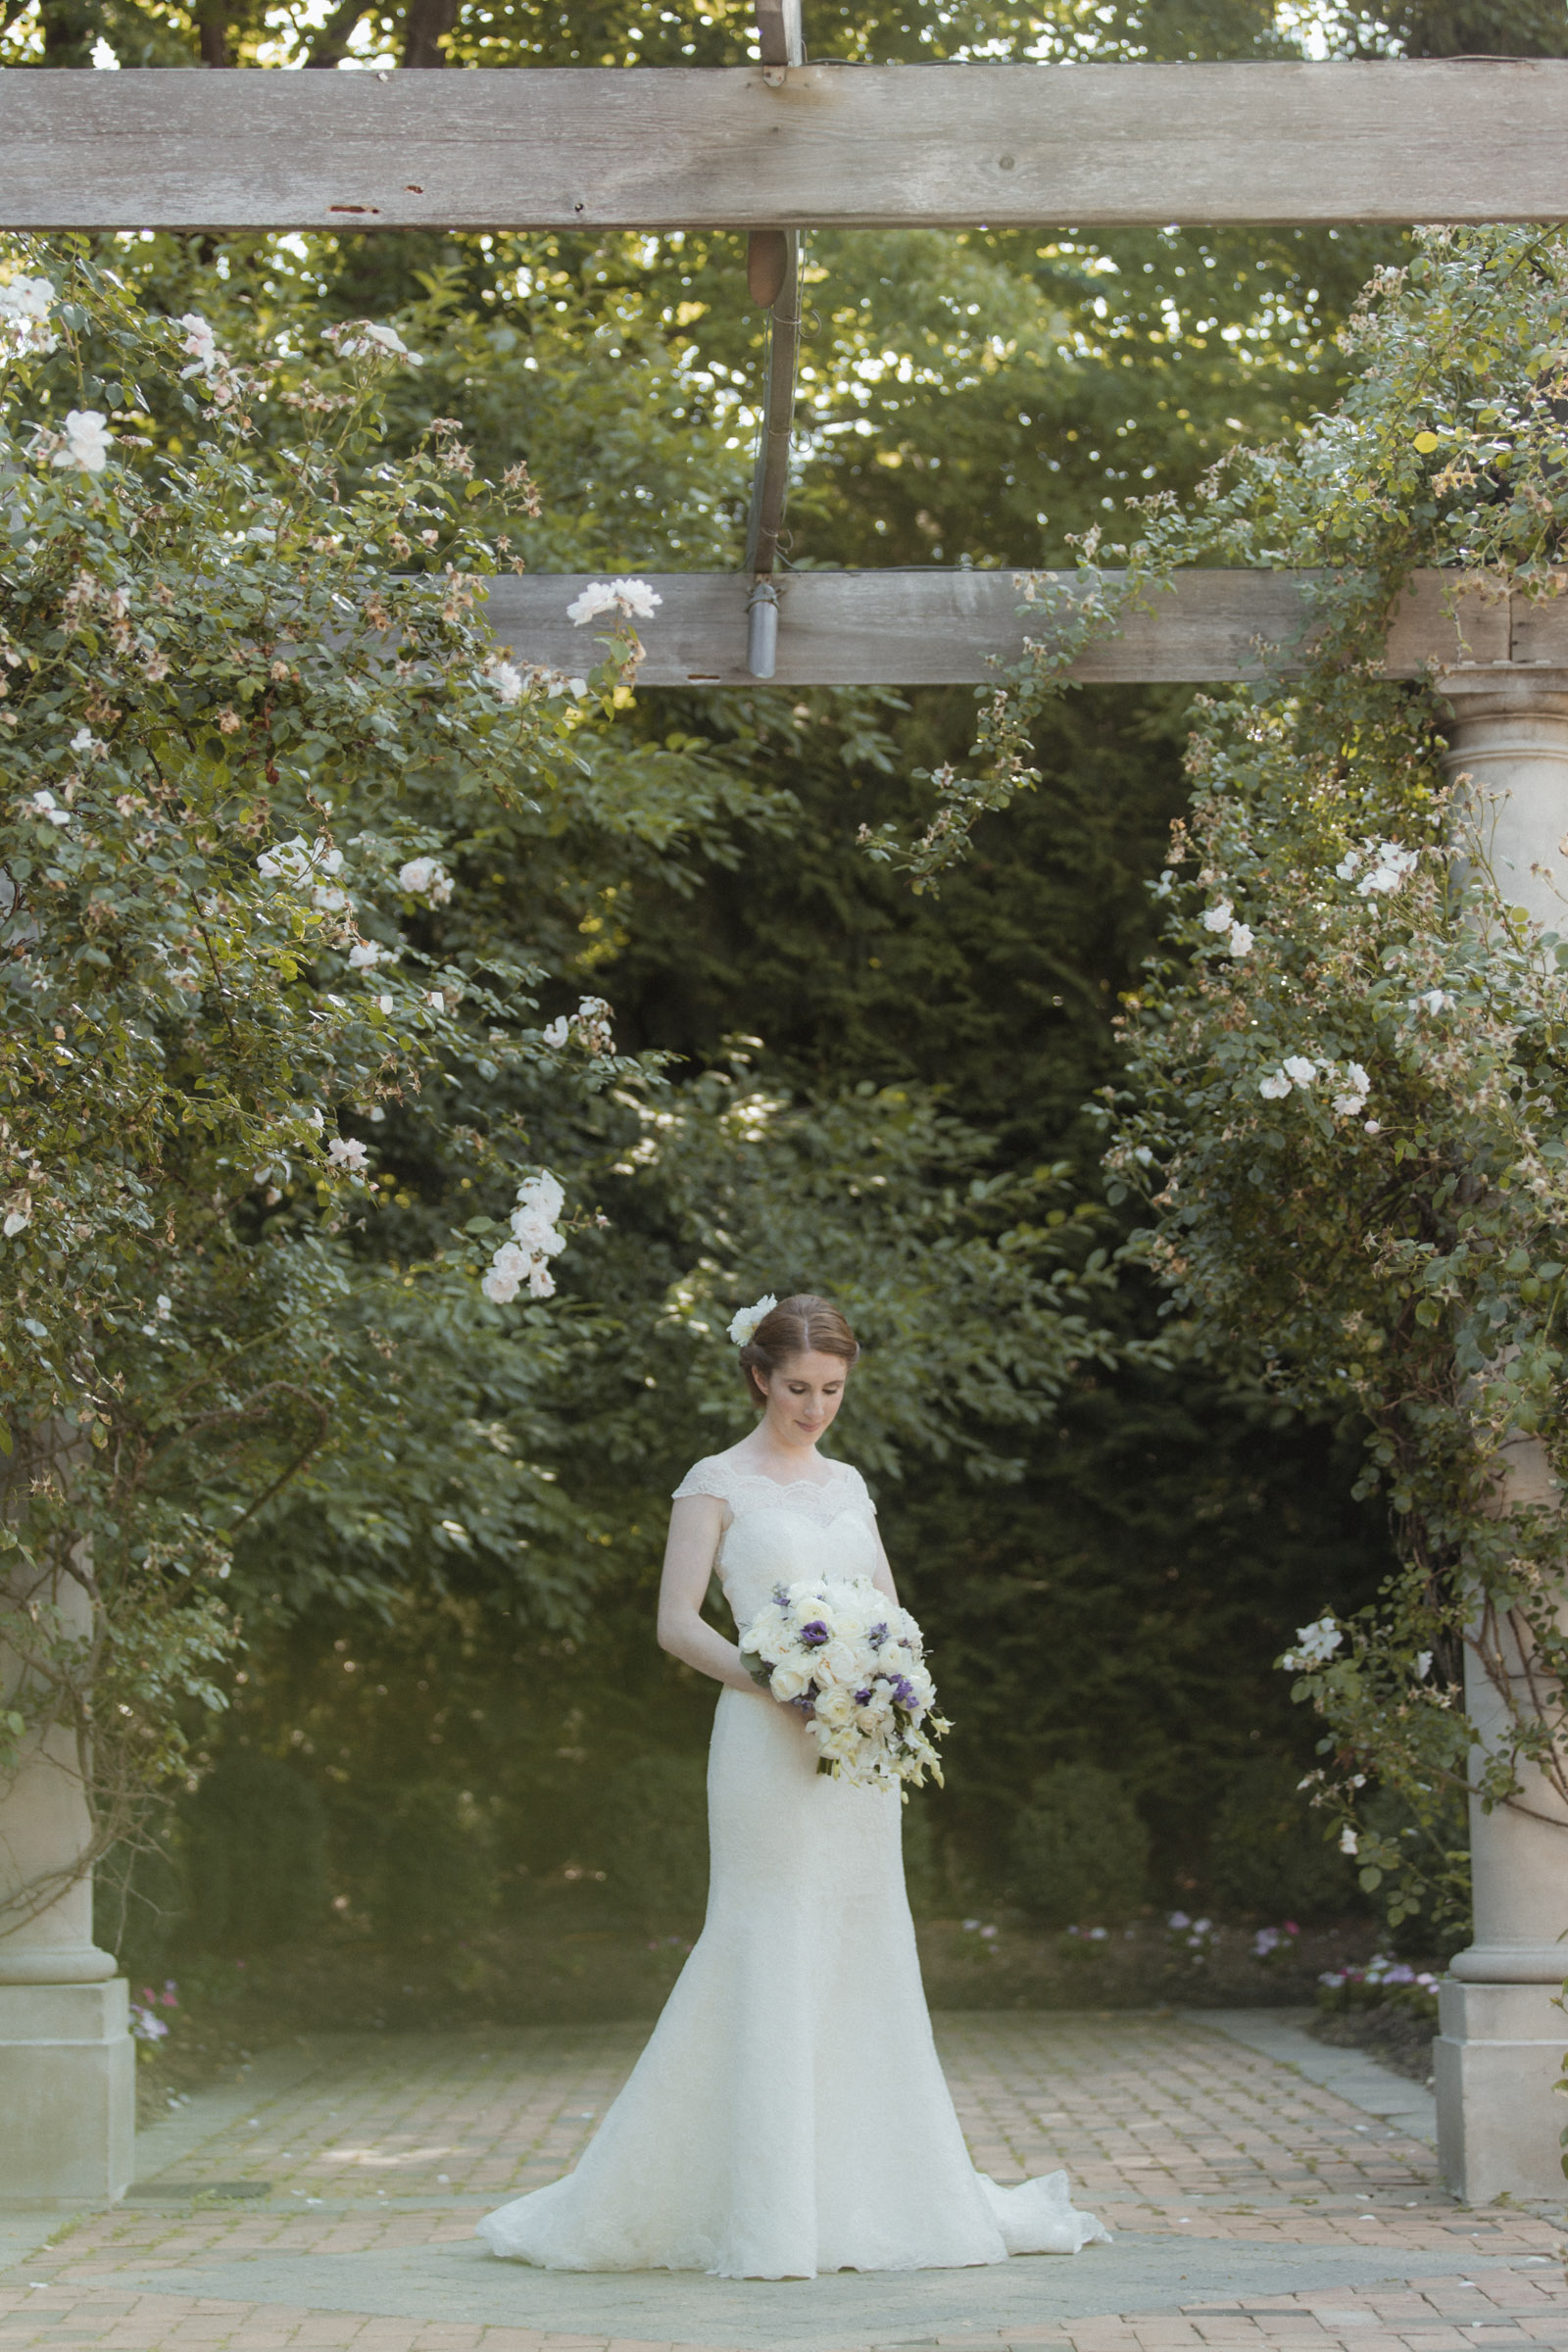 Bride stands in romantic garden wearing Augusta Jones, lace gown - Estate at Florentine Gardens wedding - Hudson Valley Wedding - Kelsey & Anish's wedding - Amy Sims Photography